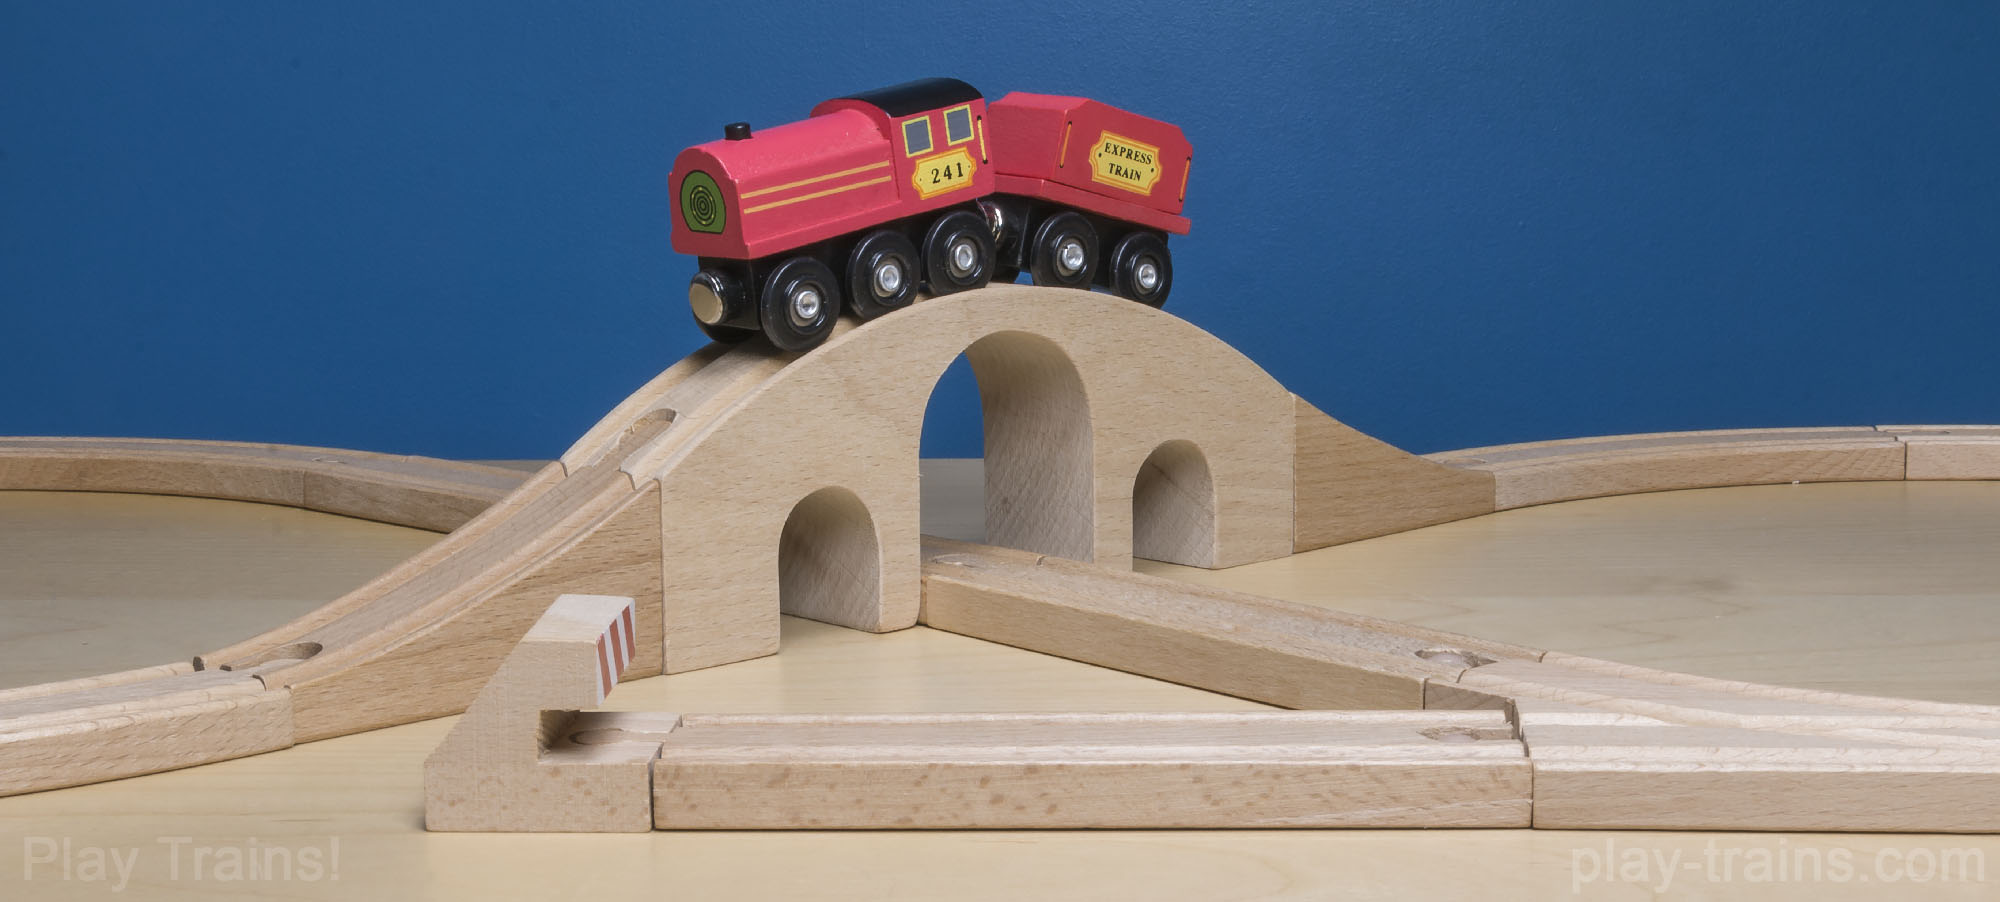 Melissa & Doug Figure 8 Wooden Train Set  -- The Play Trains! Guide to Wooden Train Sets: expert advice on the best wooden train set to buy for your little engineer.